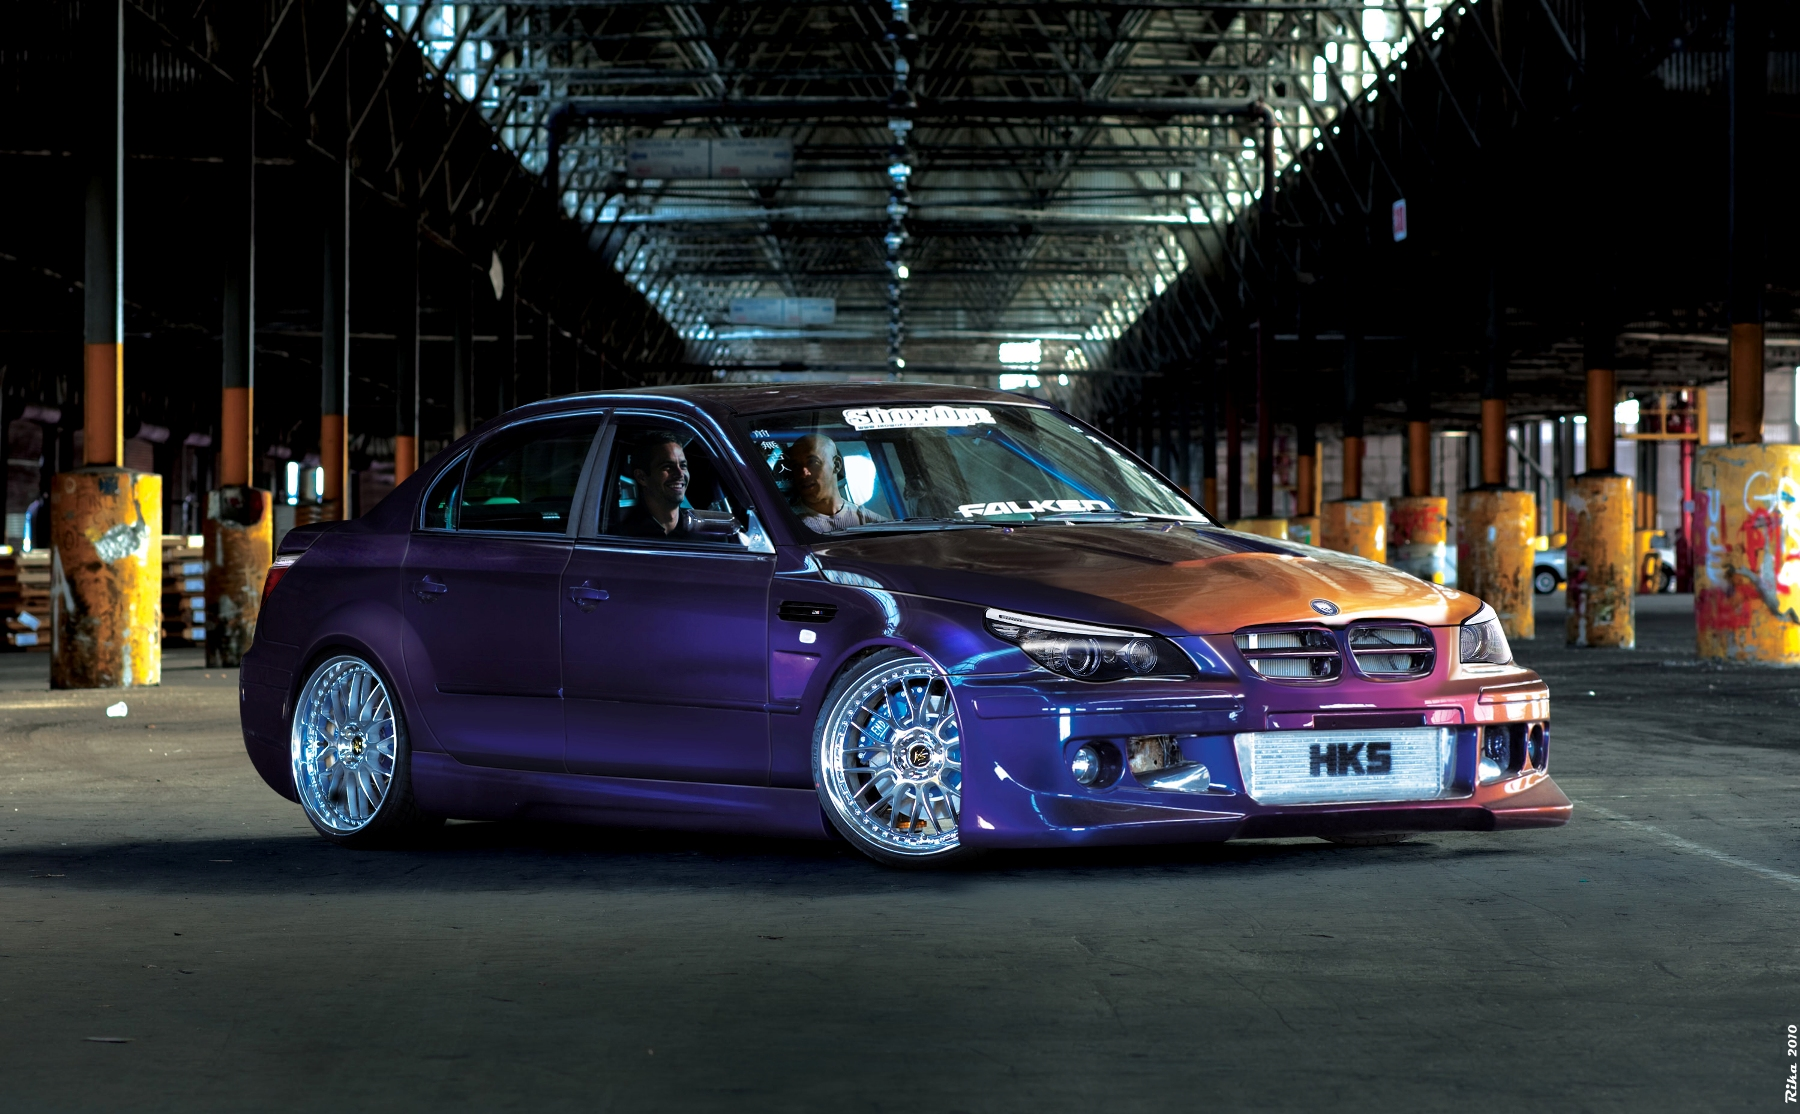 M5 fast and furious 4 by rikadesigner on deviantart - Virtual diva fast and furious 4 ...